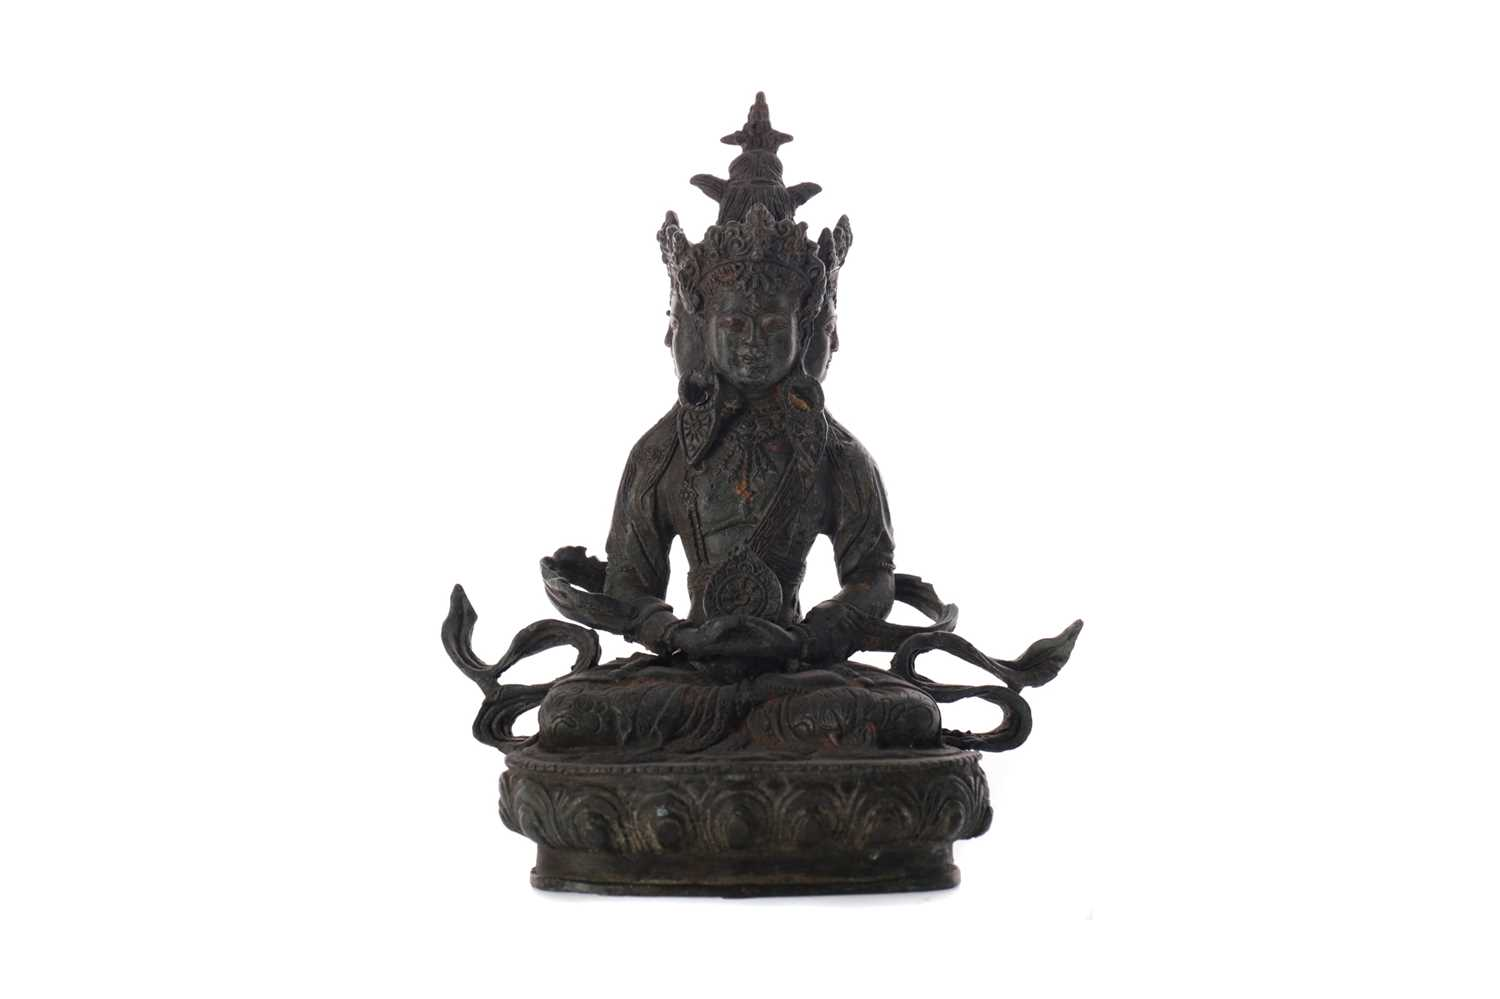 Lot 745 - AN EASTERN BRONZED FIGURE OF A SEATED DEITY